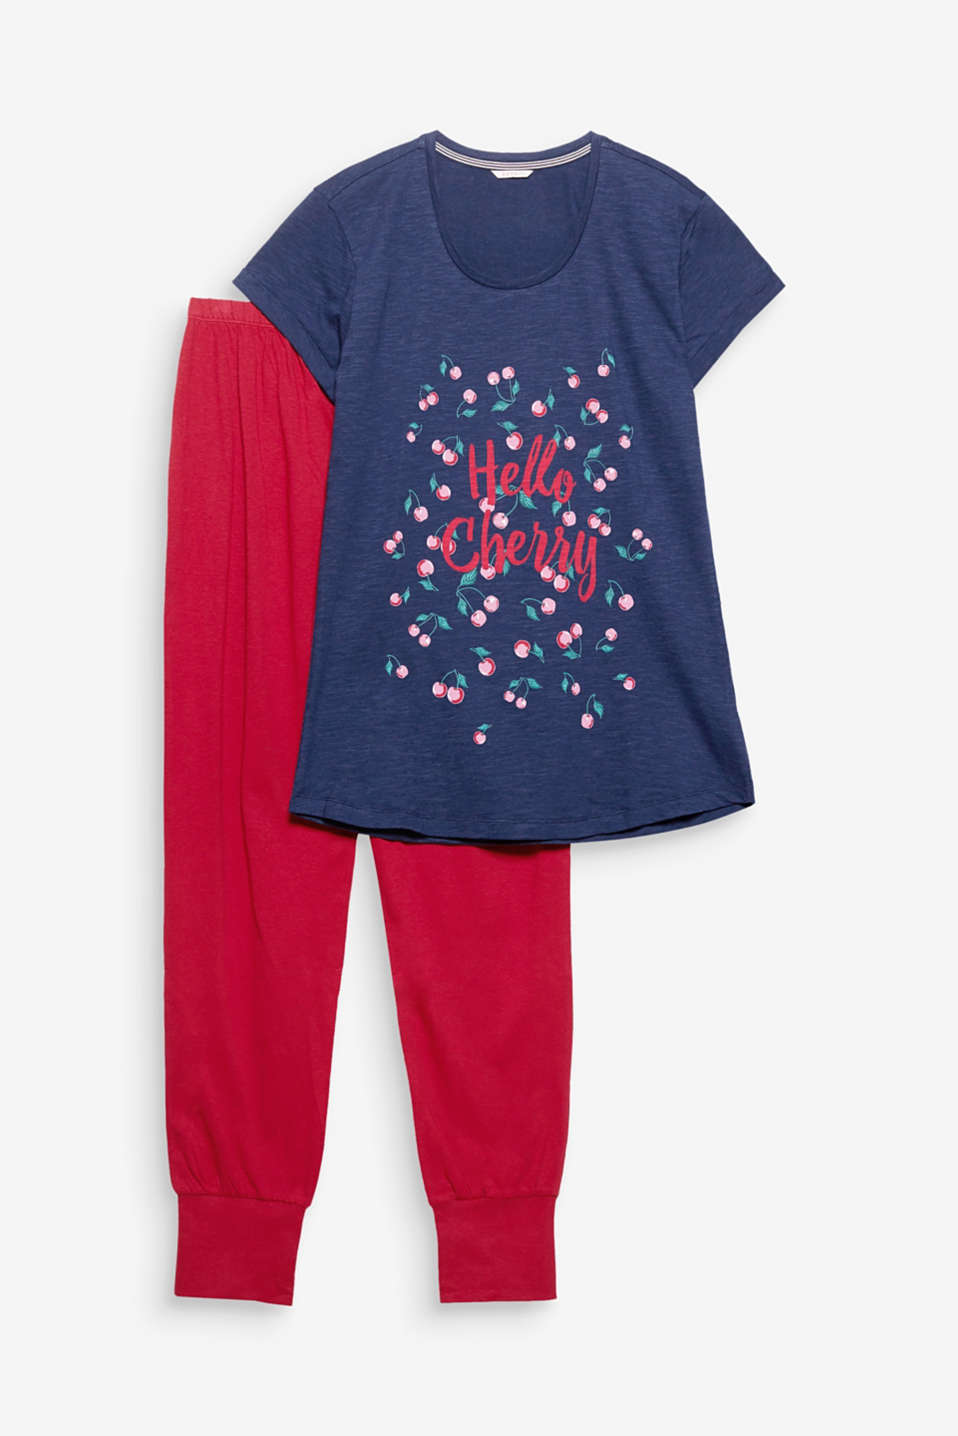 Hello cherry! The cheerful cherry print makes these cotton pyjamas a feel-good, head-turning combination.